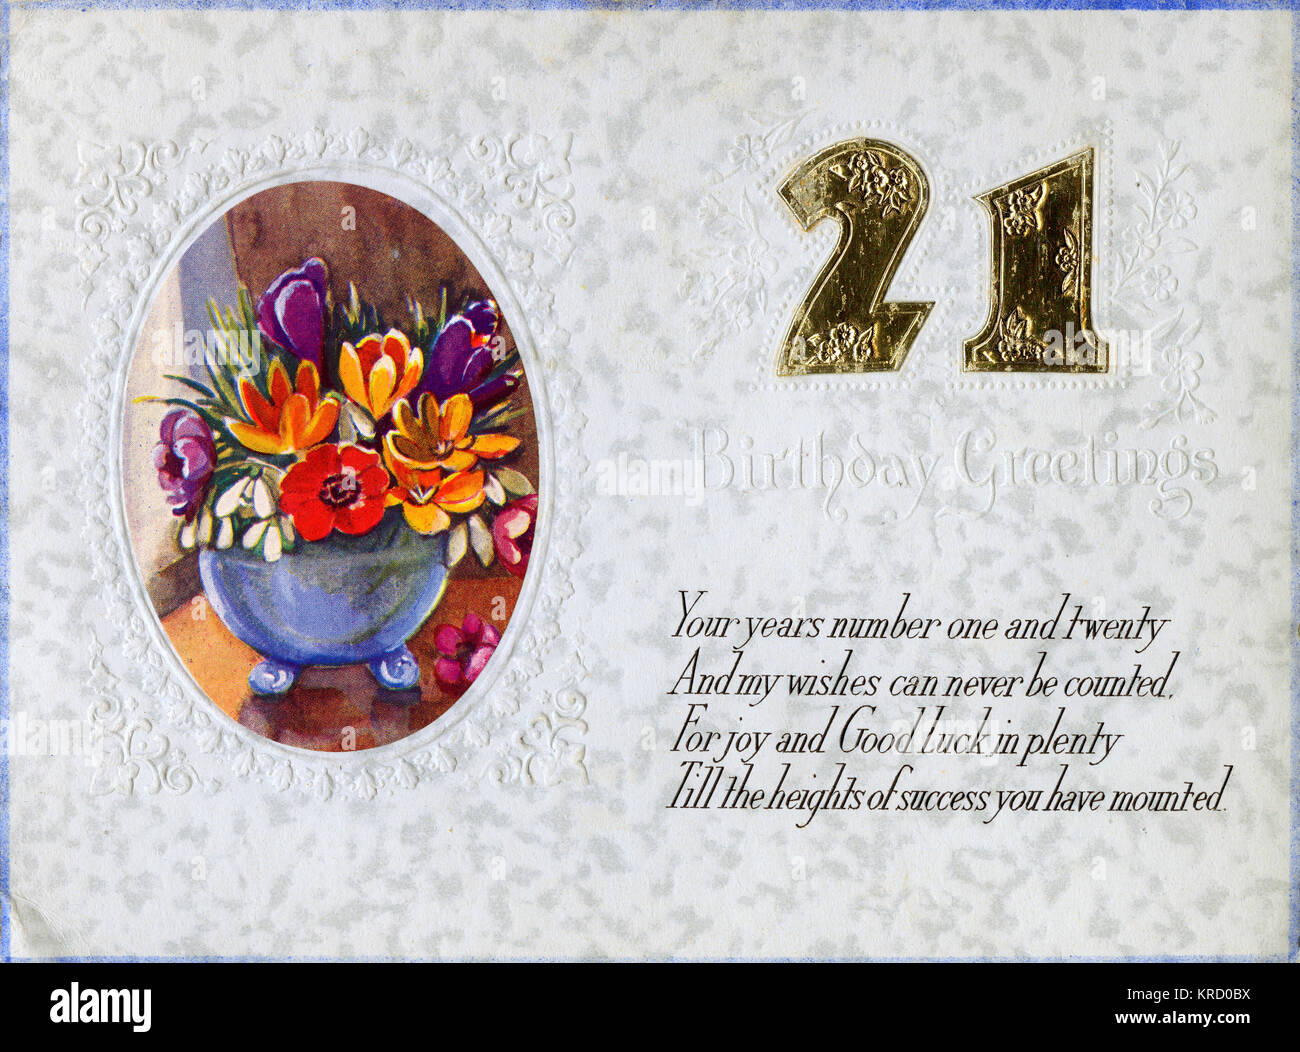 A 21st birthday card with a vase of colourful flowers in an oval frame.       Date: 1936 Stock Photo